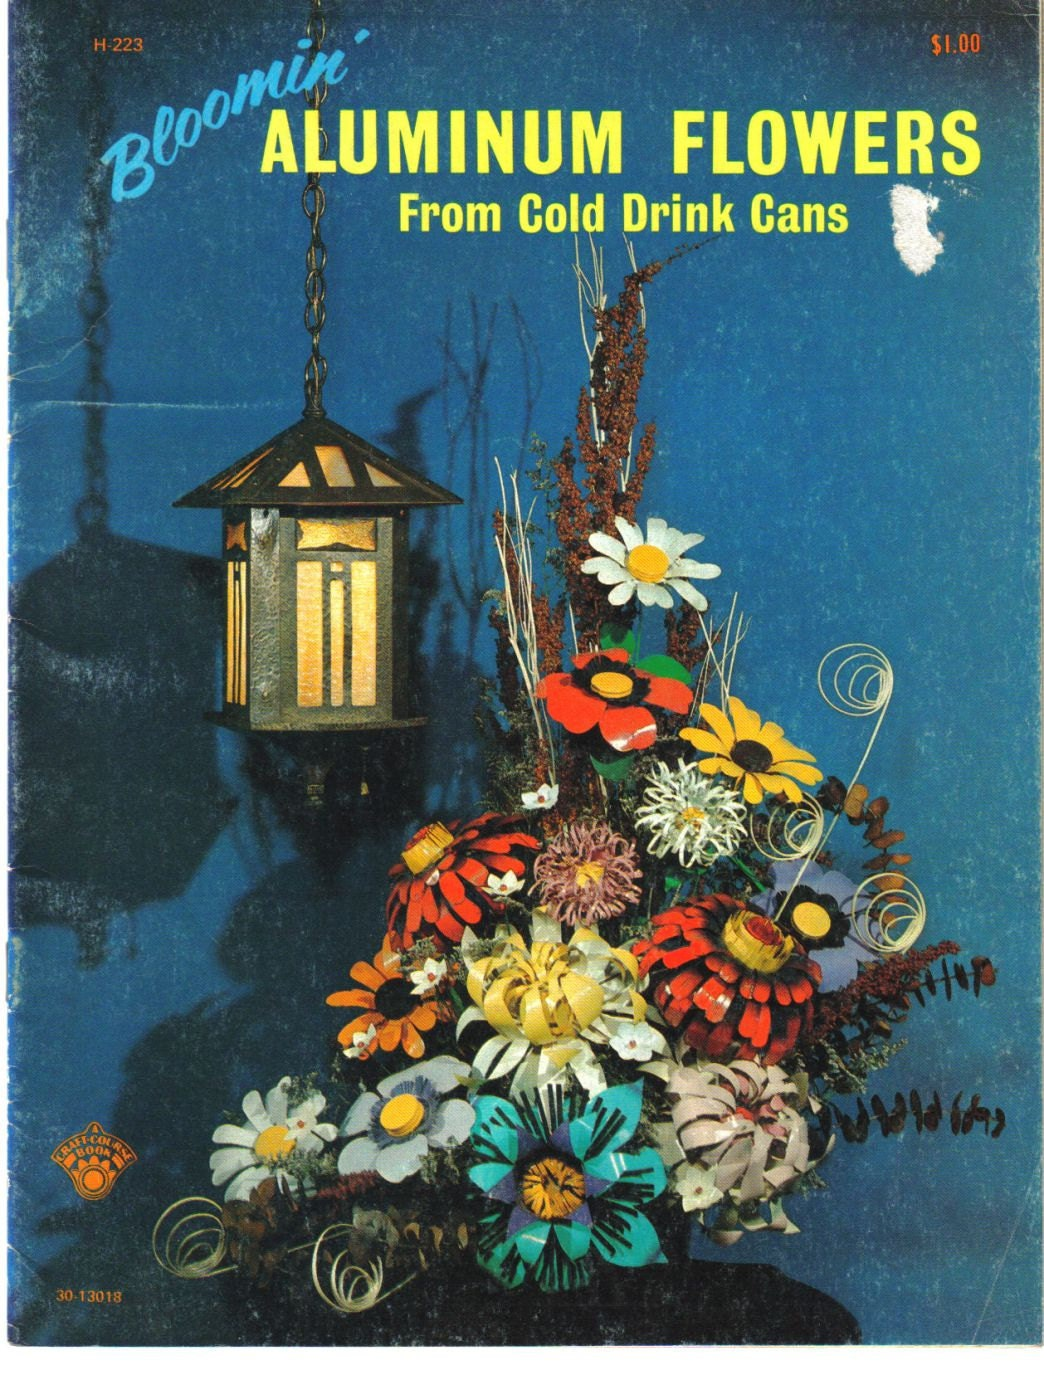 Aluminum can flowers 70 39 s vintage recycling craft by for Aluminum can crafts patterns